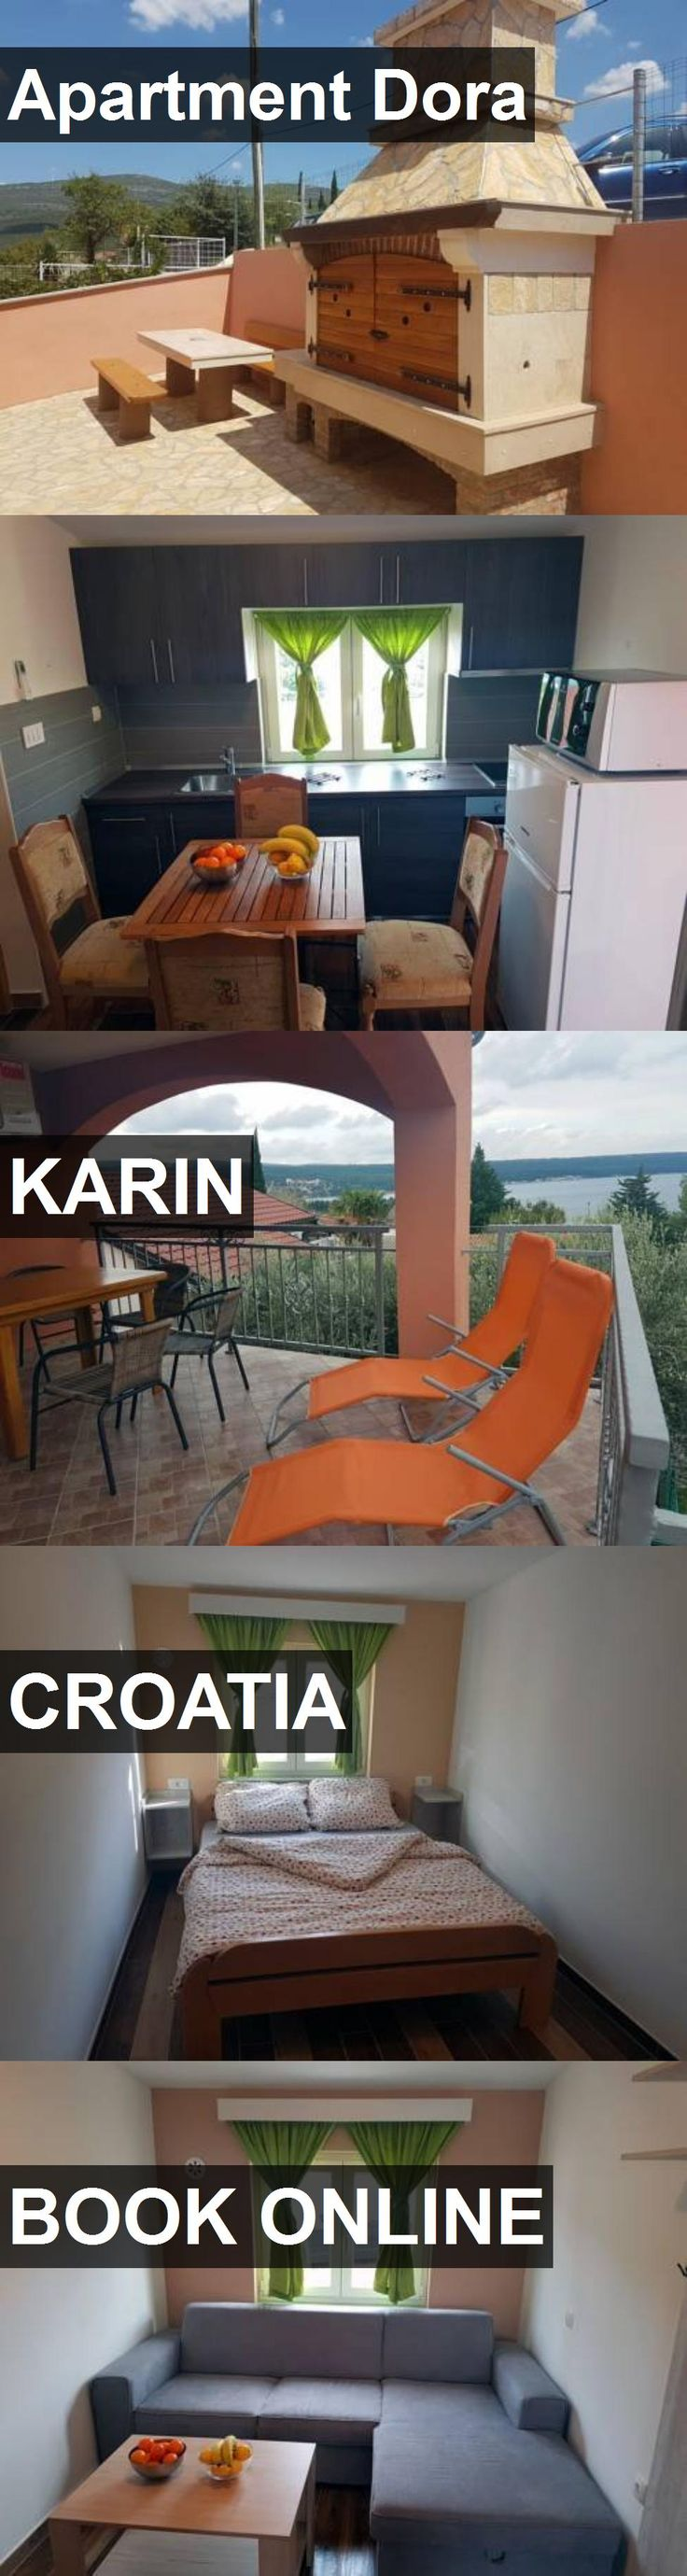 Apartment Dora in Karin, Croatia. For more information, photos, reviews and best prices please follow the link. #Croatia #Karin #travel #vacation #apartment